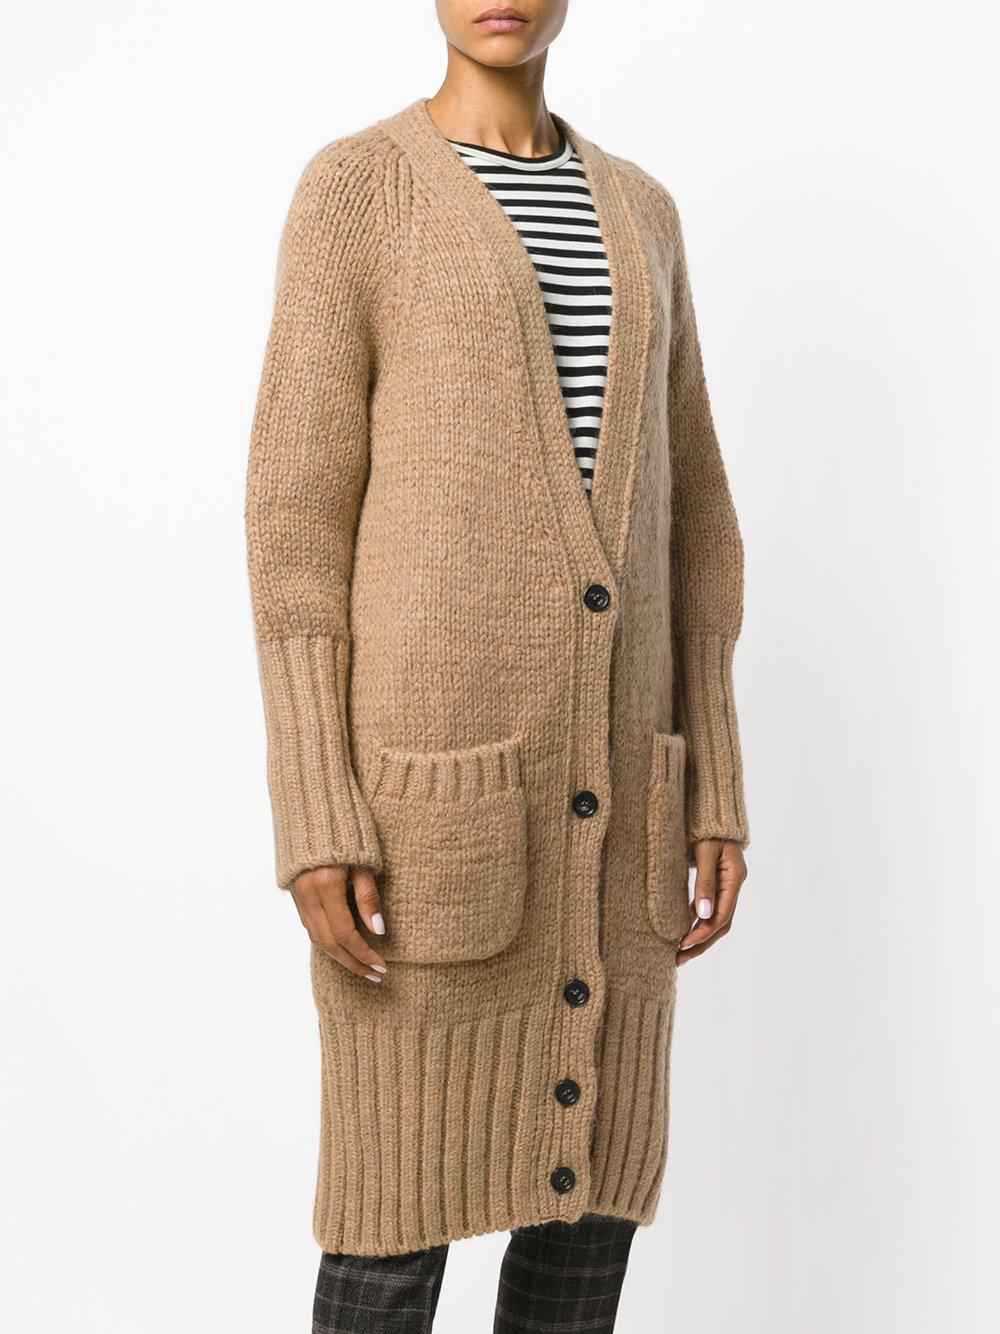 N°21 Chunky Knit Button-up Cardigan in Brown | Lyst